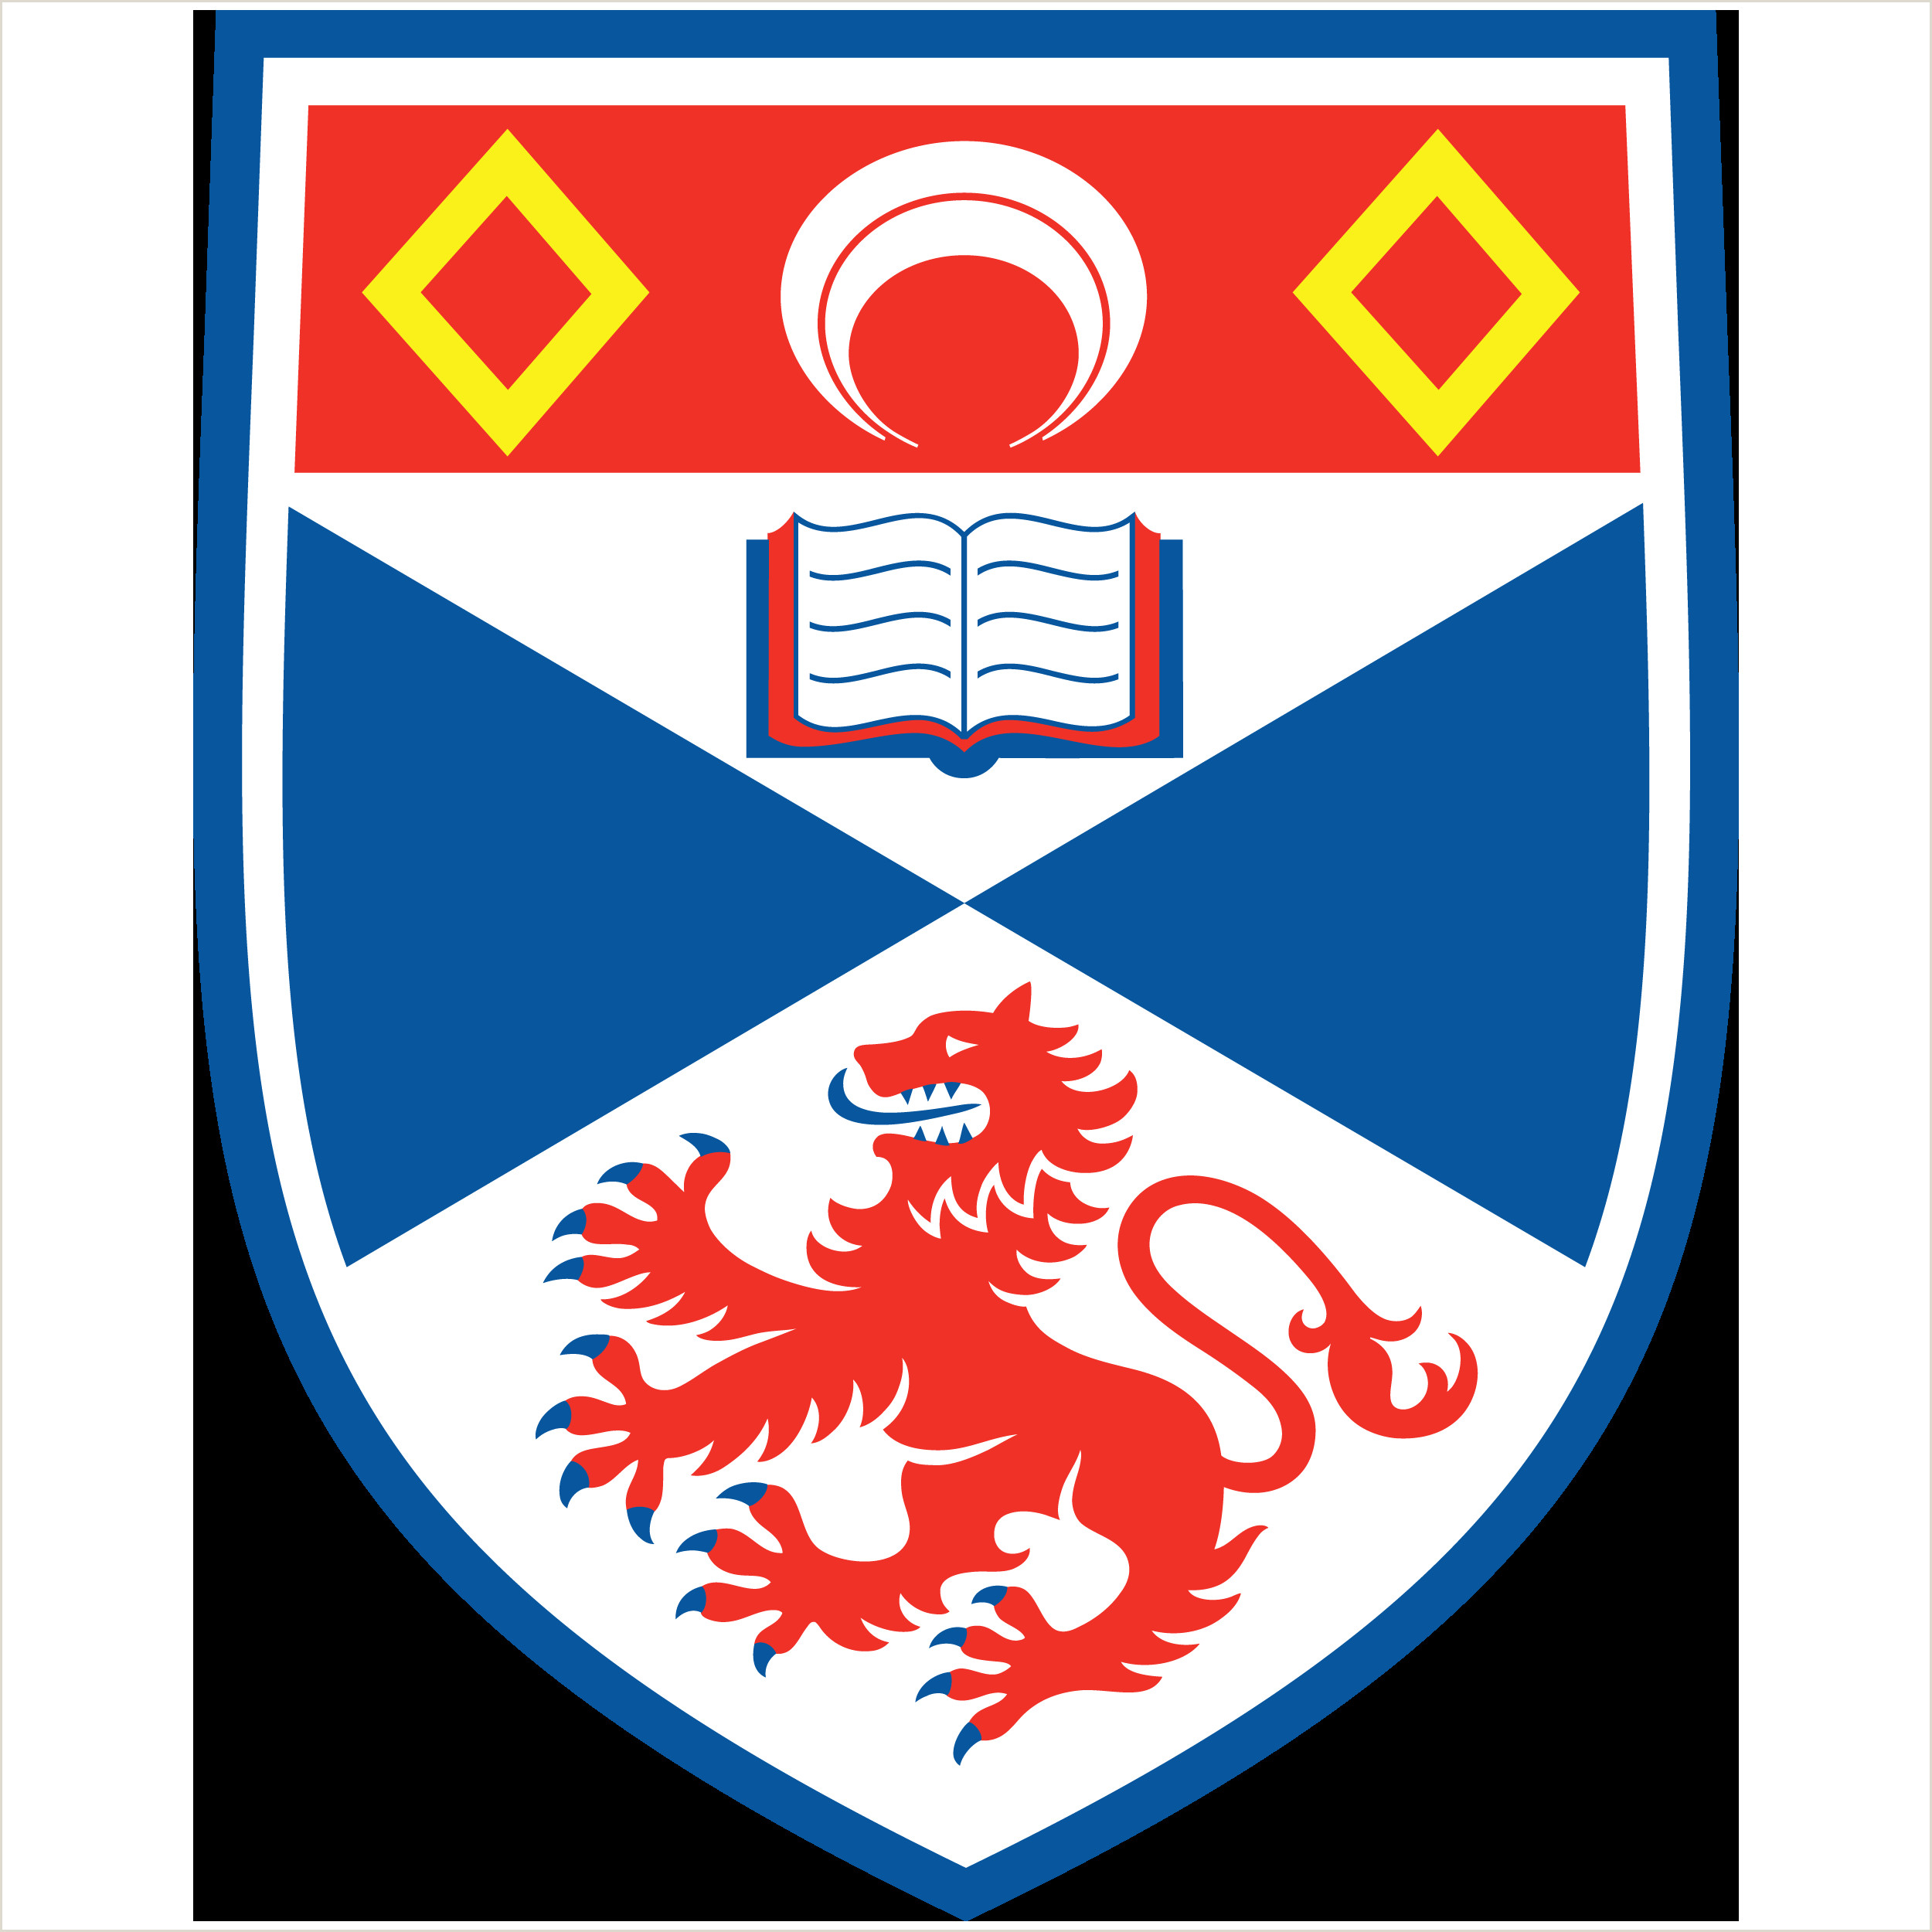 Curriculum Academico Simples University Of St andrews